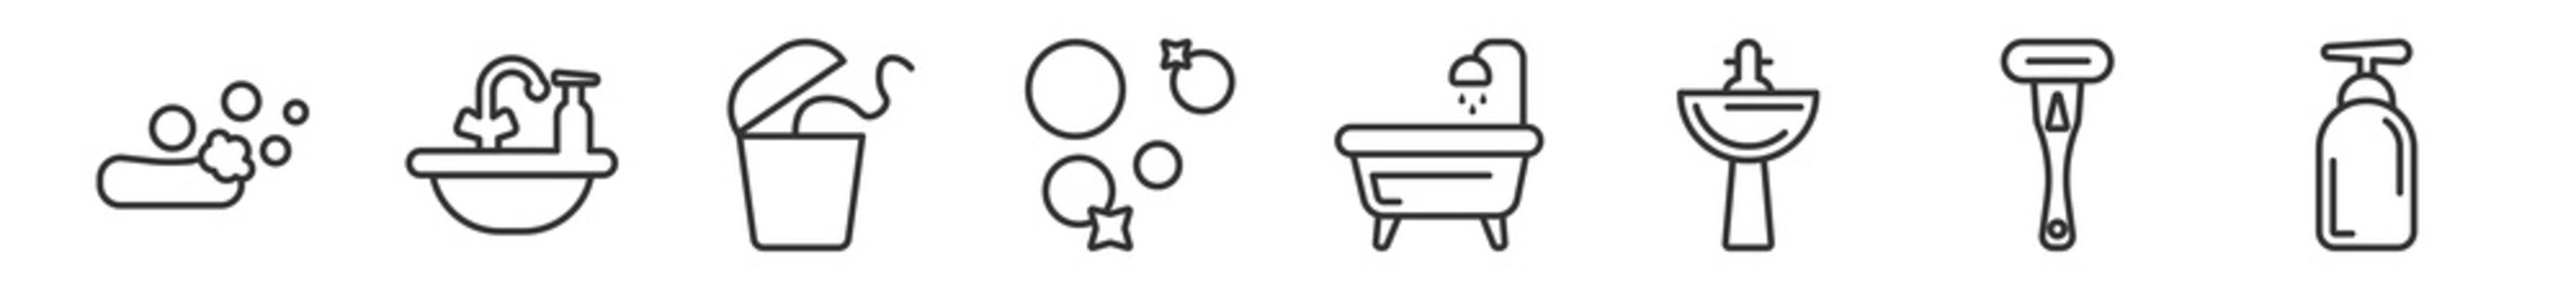 outline set of hygiene line icons. linear vector icons such as ablution, washbasin, flossing, bubbles, bathroom, pump bottle. vector illustration.